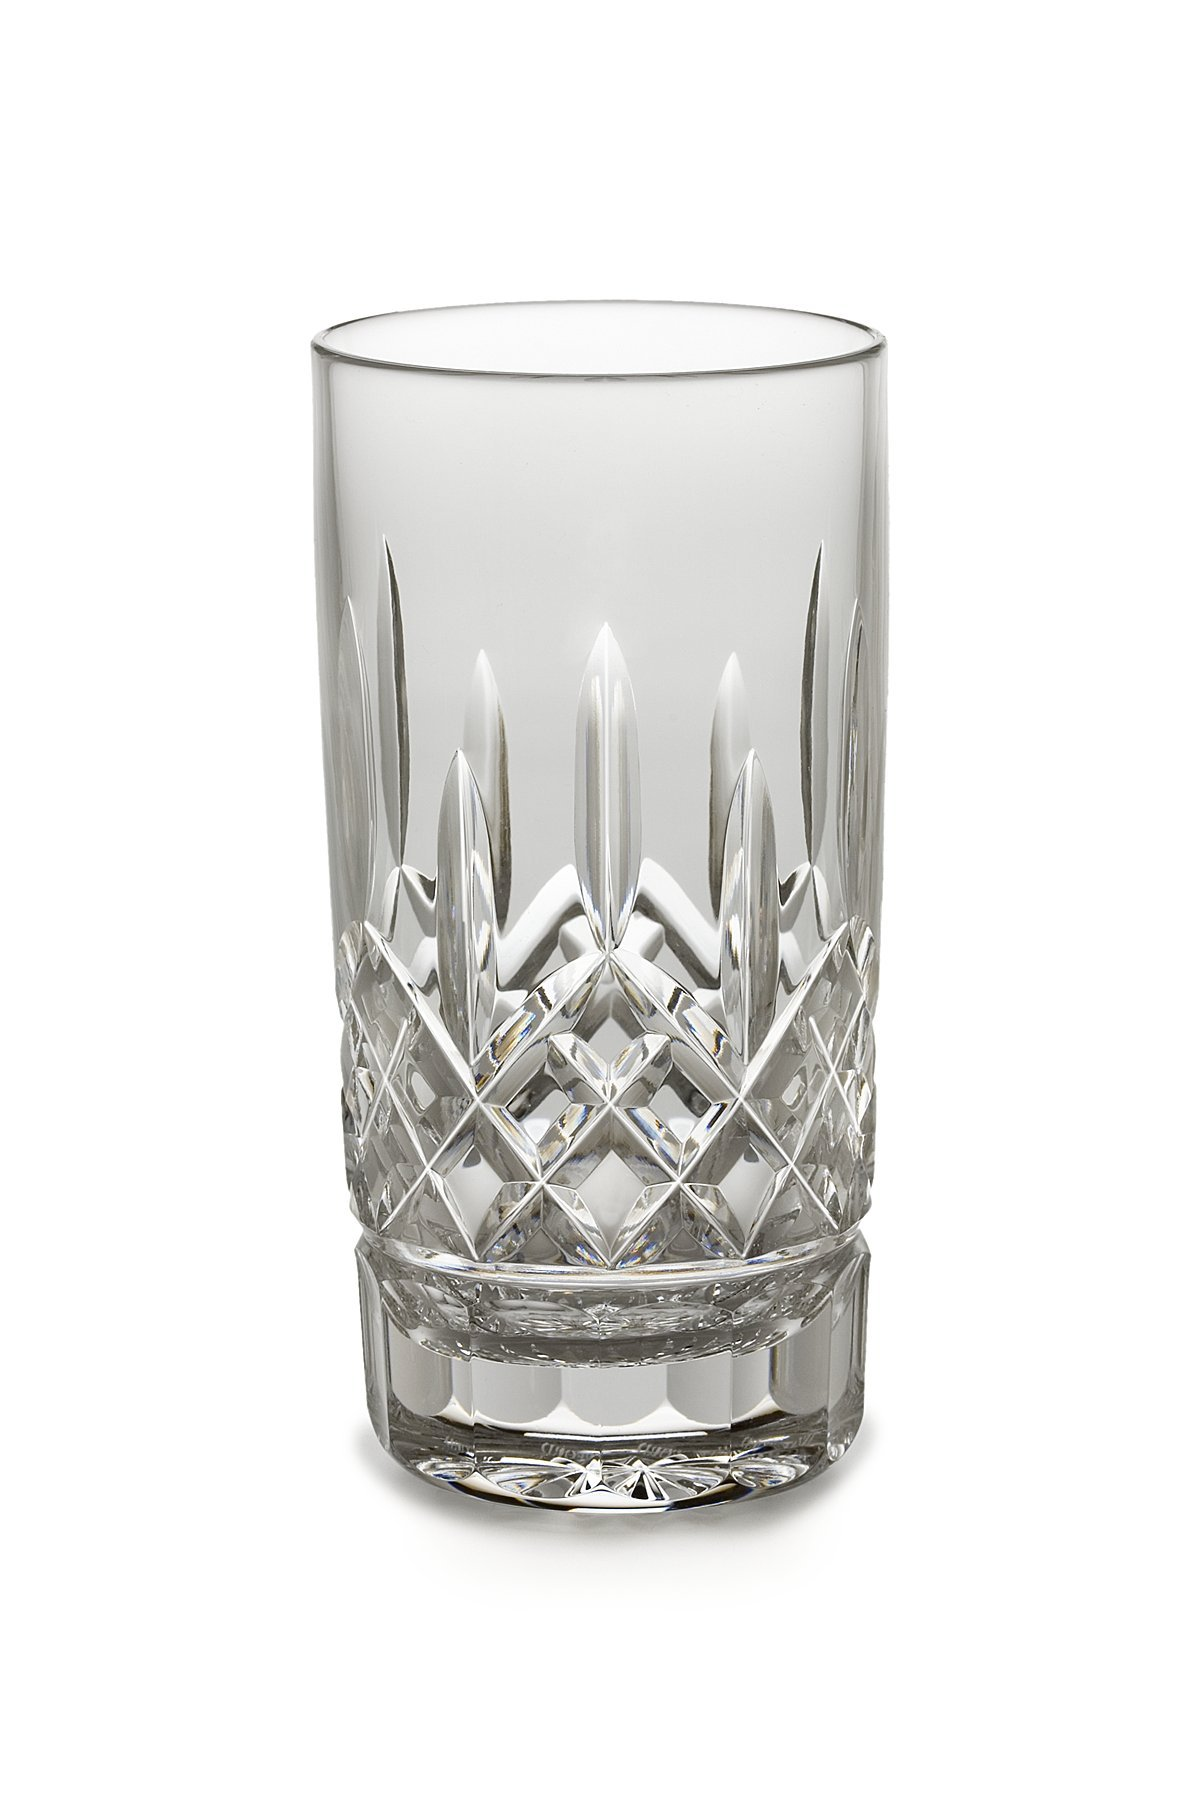 Waterford Lismore 12-Ounce Highball Tumbler - 5503182100, Clear